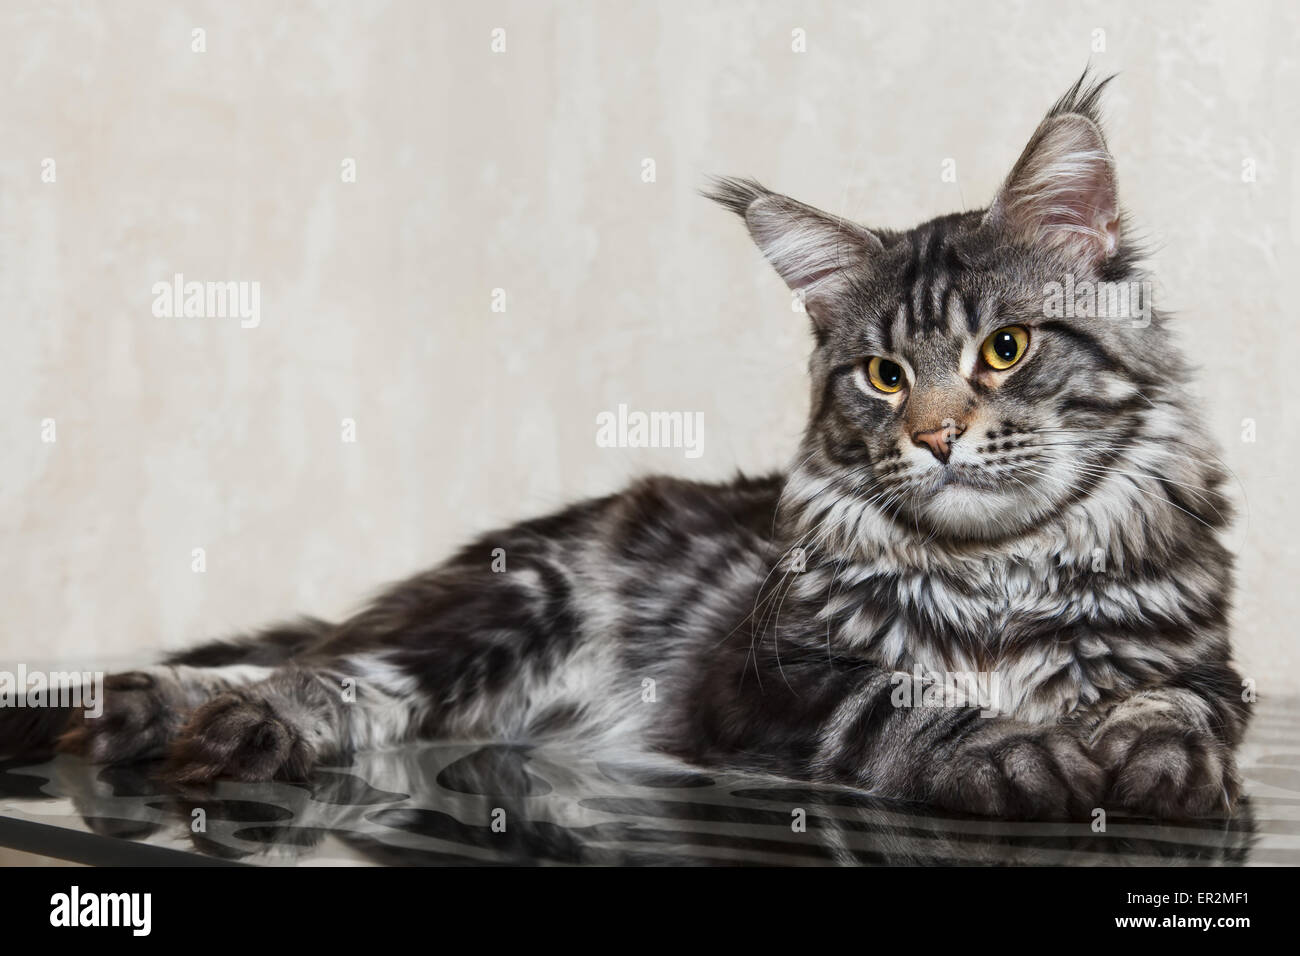 schwarz tabby maine coon katze mit gelben augen und gro en luchs posiert auf glastisch stockfoto. Black Bedroom Furniture Sets. Home Design Ideas